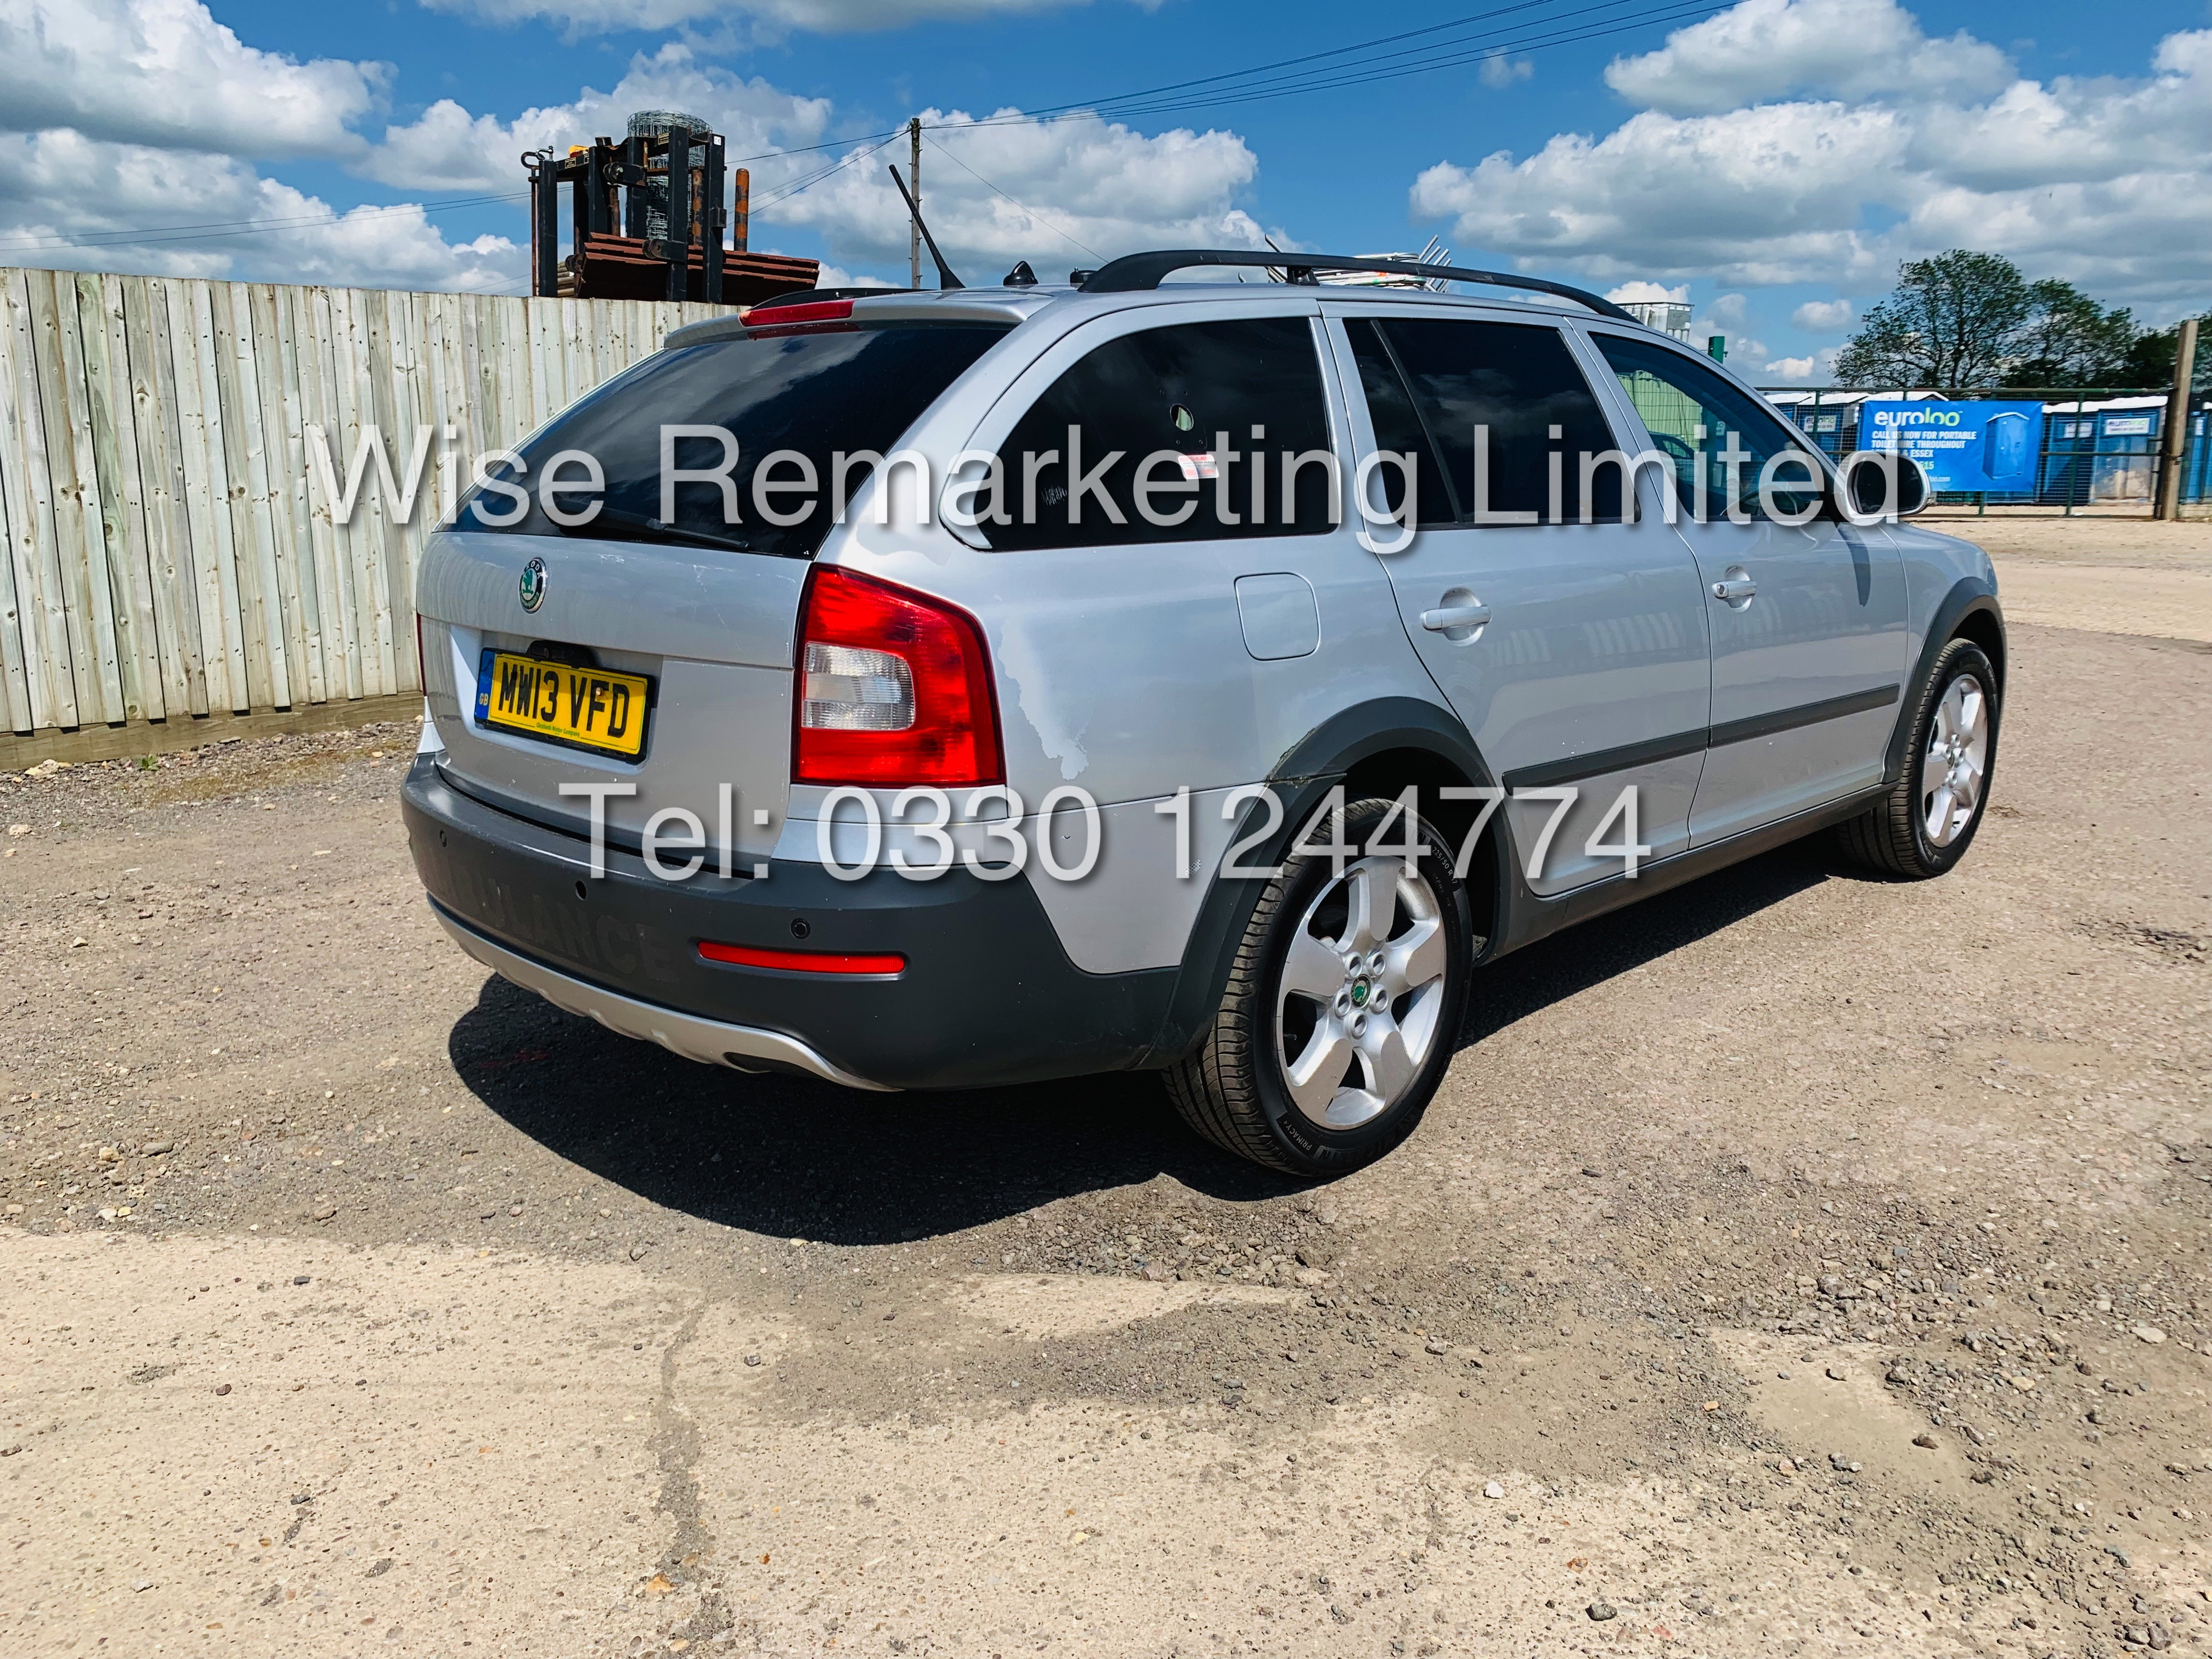 SKODA OCTAVIA (SCOUT) 2.0tdi DSG AUTOMATIC ESTATE / 2013 / 1 OWNER WITH FULL HISTORY / 140BHP - Image 4 of 14